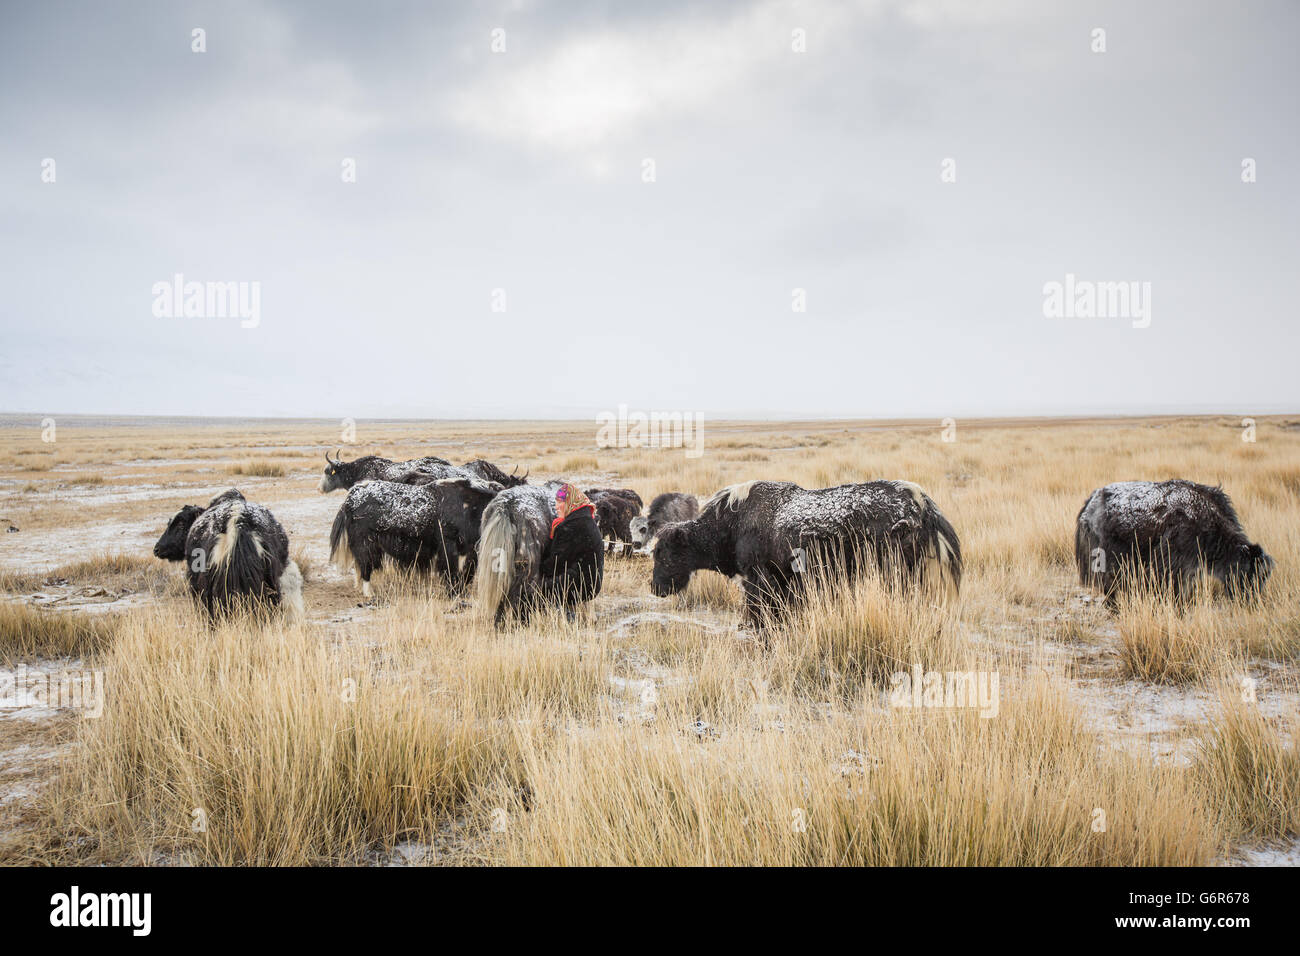 a nomadic woman is milking a cow in a cold morning in western mongolia - Stock Image